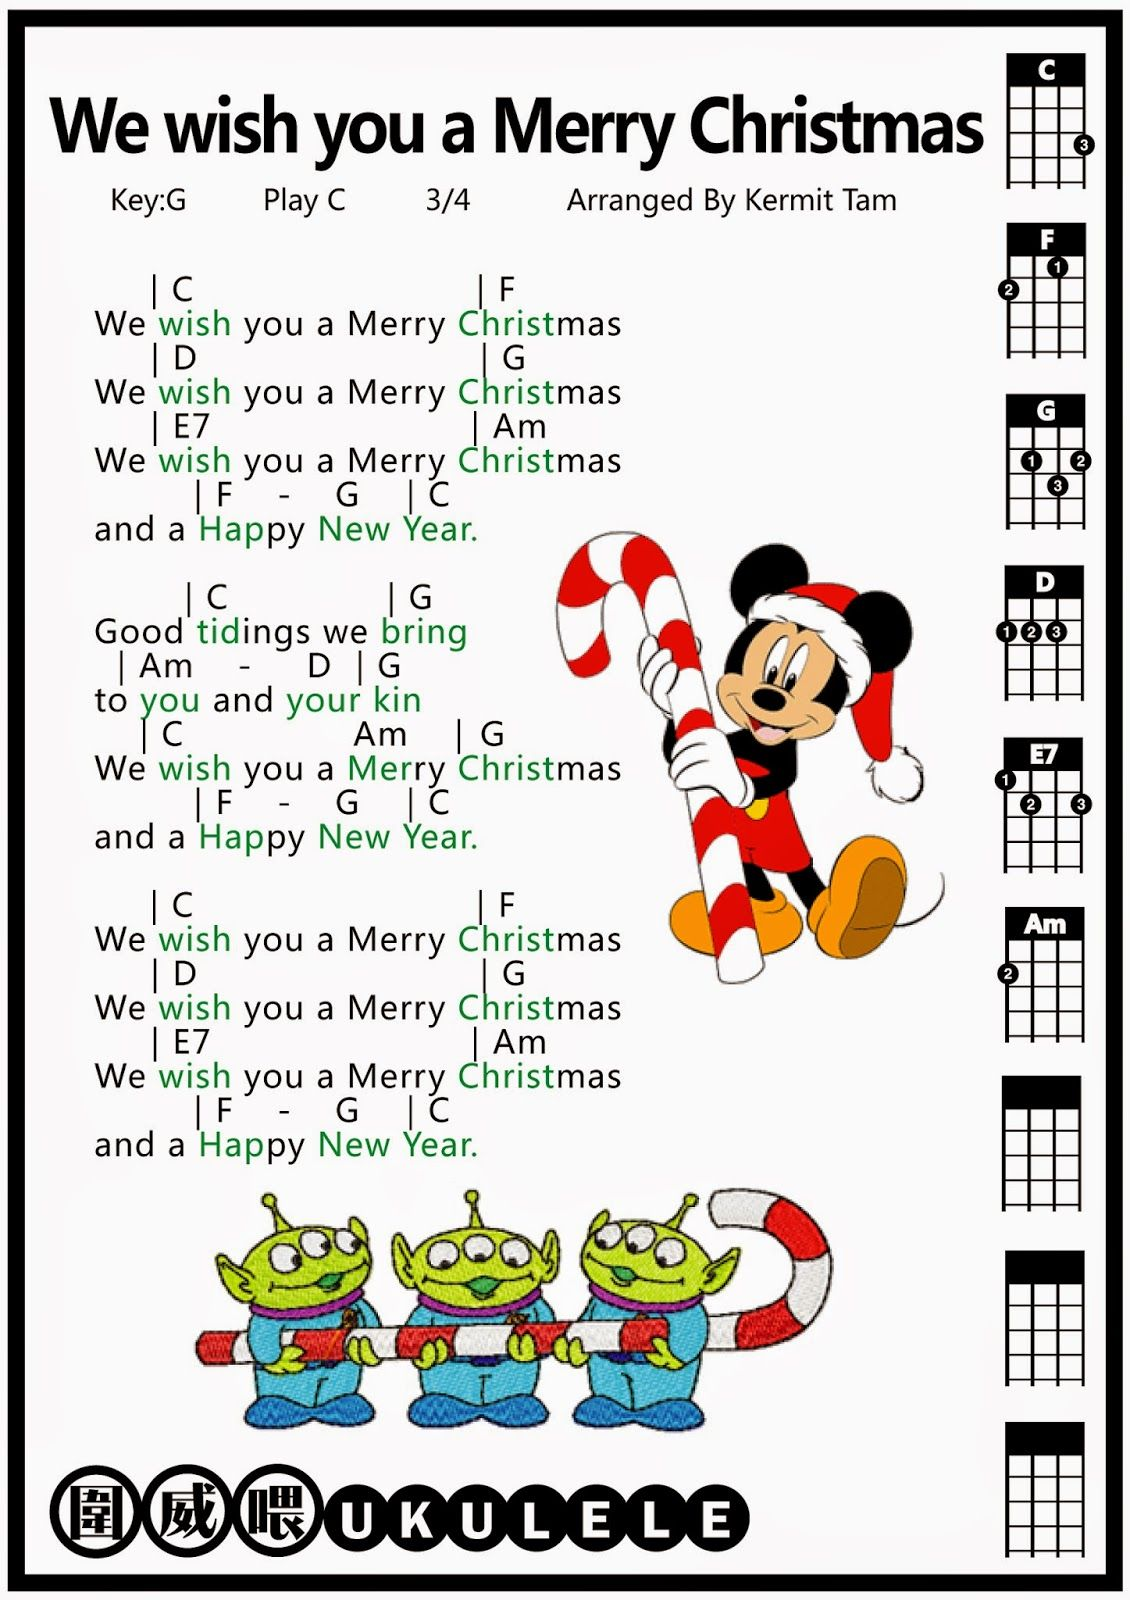 u570du5a01u5582 ukulele: We wish you a Merry Christmas [ukulele tab] : Ukulele : Pinterest : Ukulele tabs ...